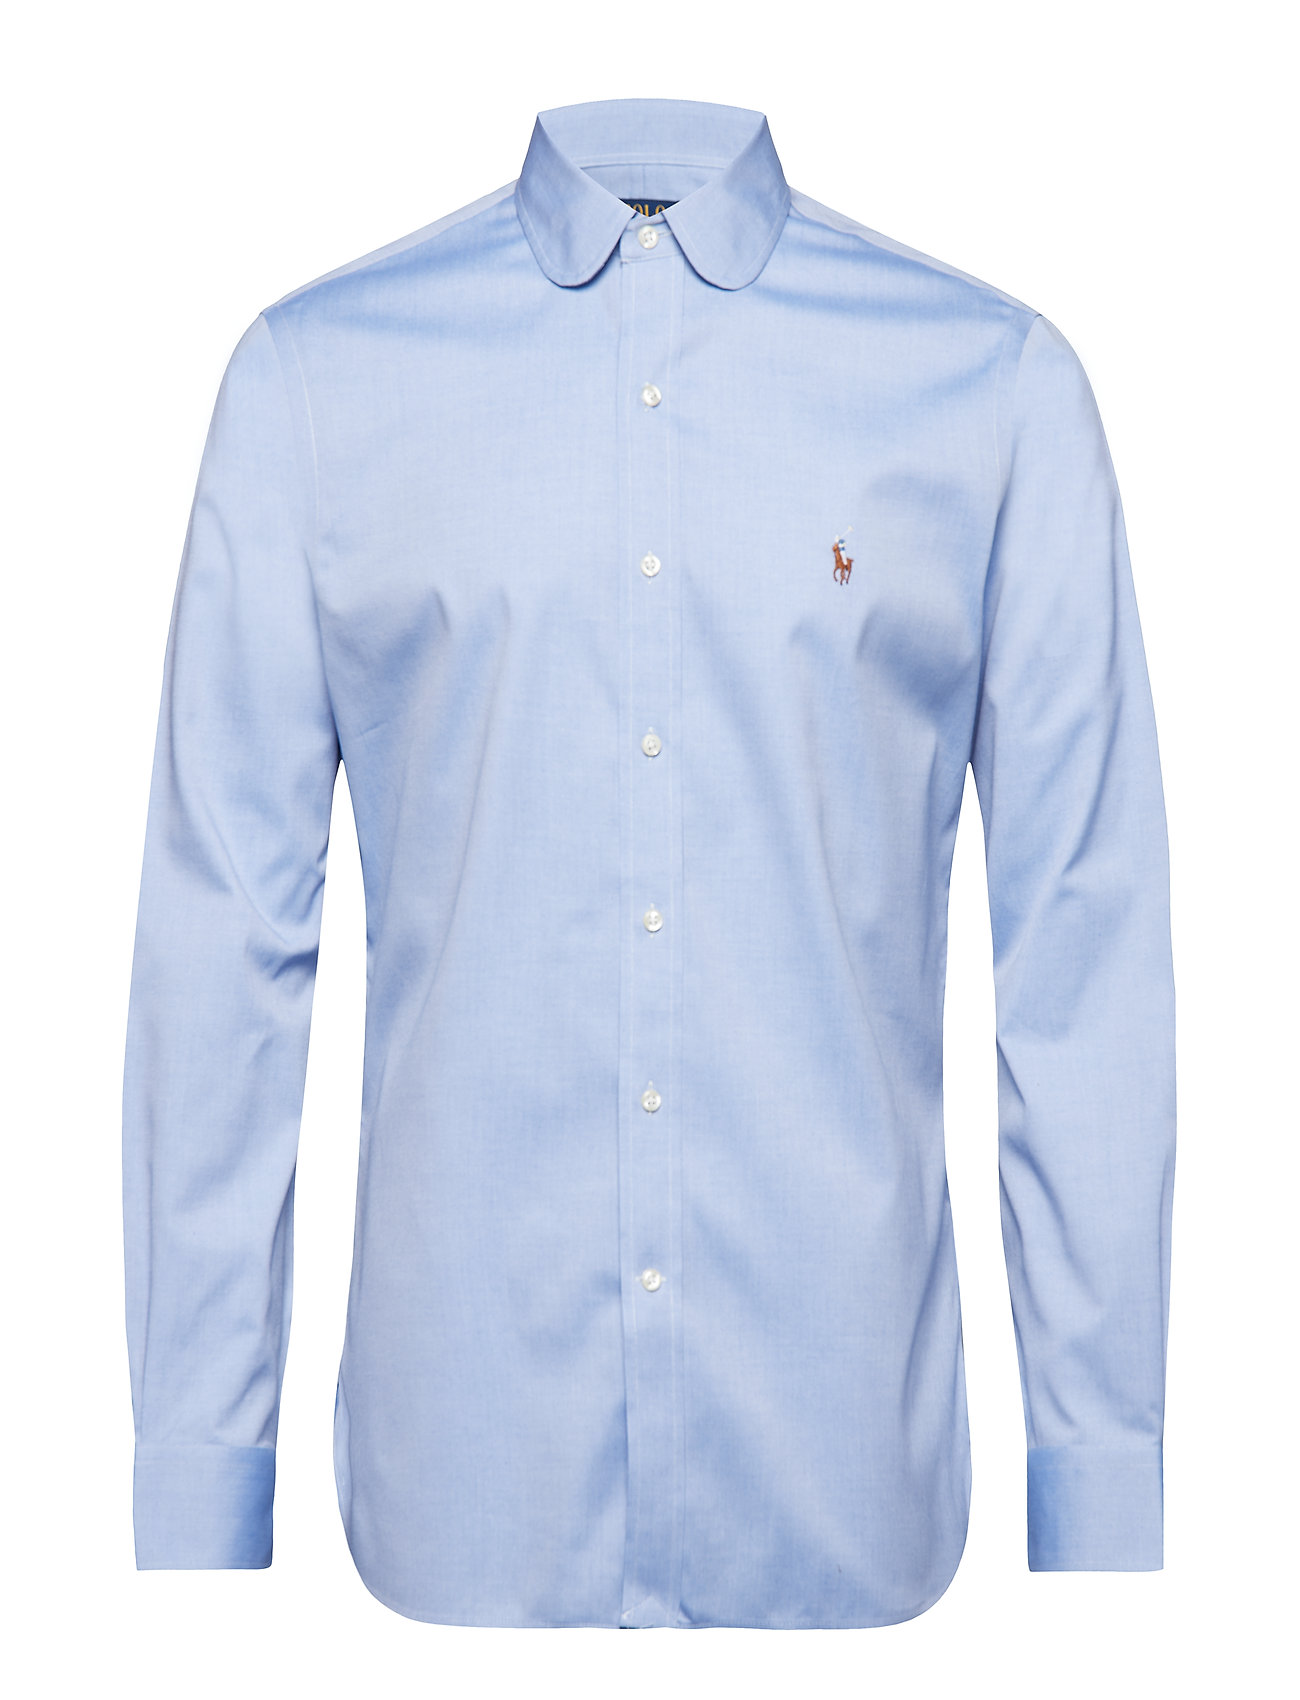 Polo Ralph Lauren S CLB PPC NK-DRESS SHIRT